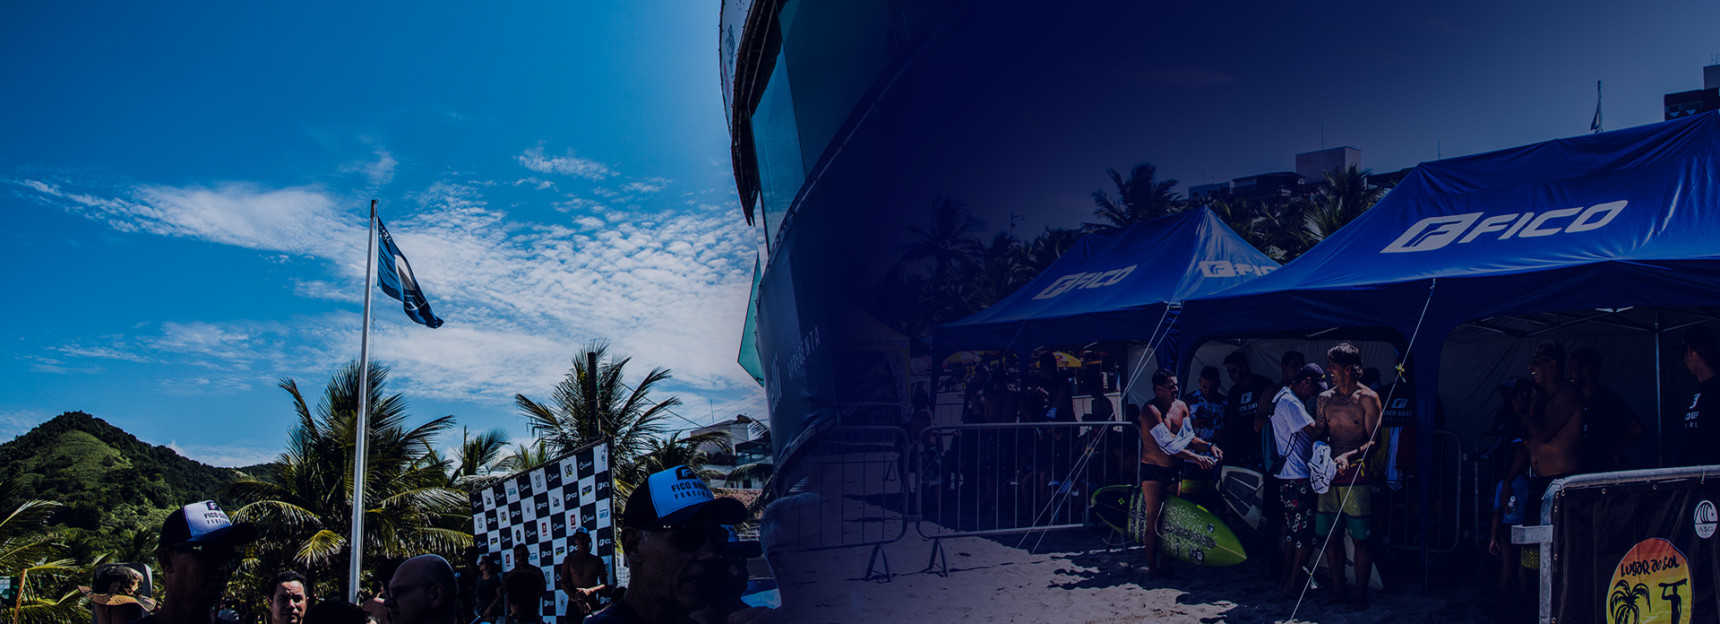 Por dentro do > FICO Surf Festival